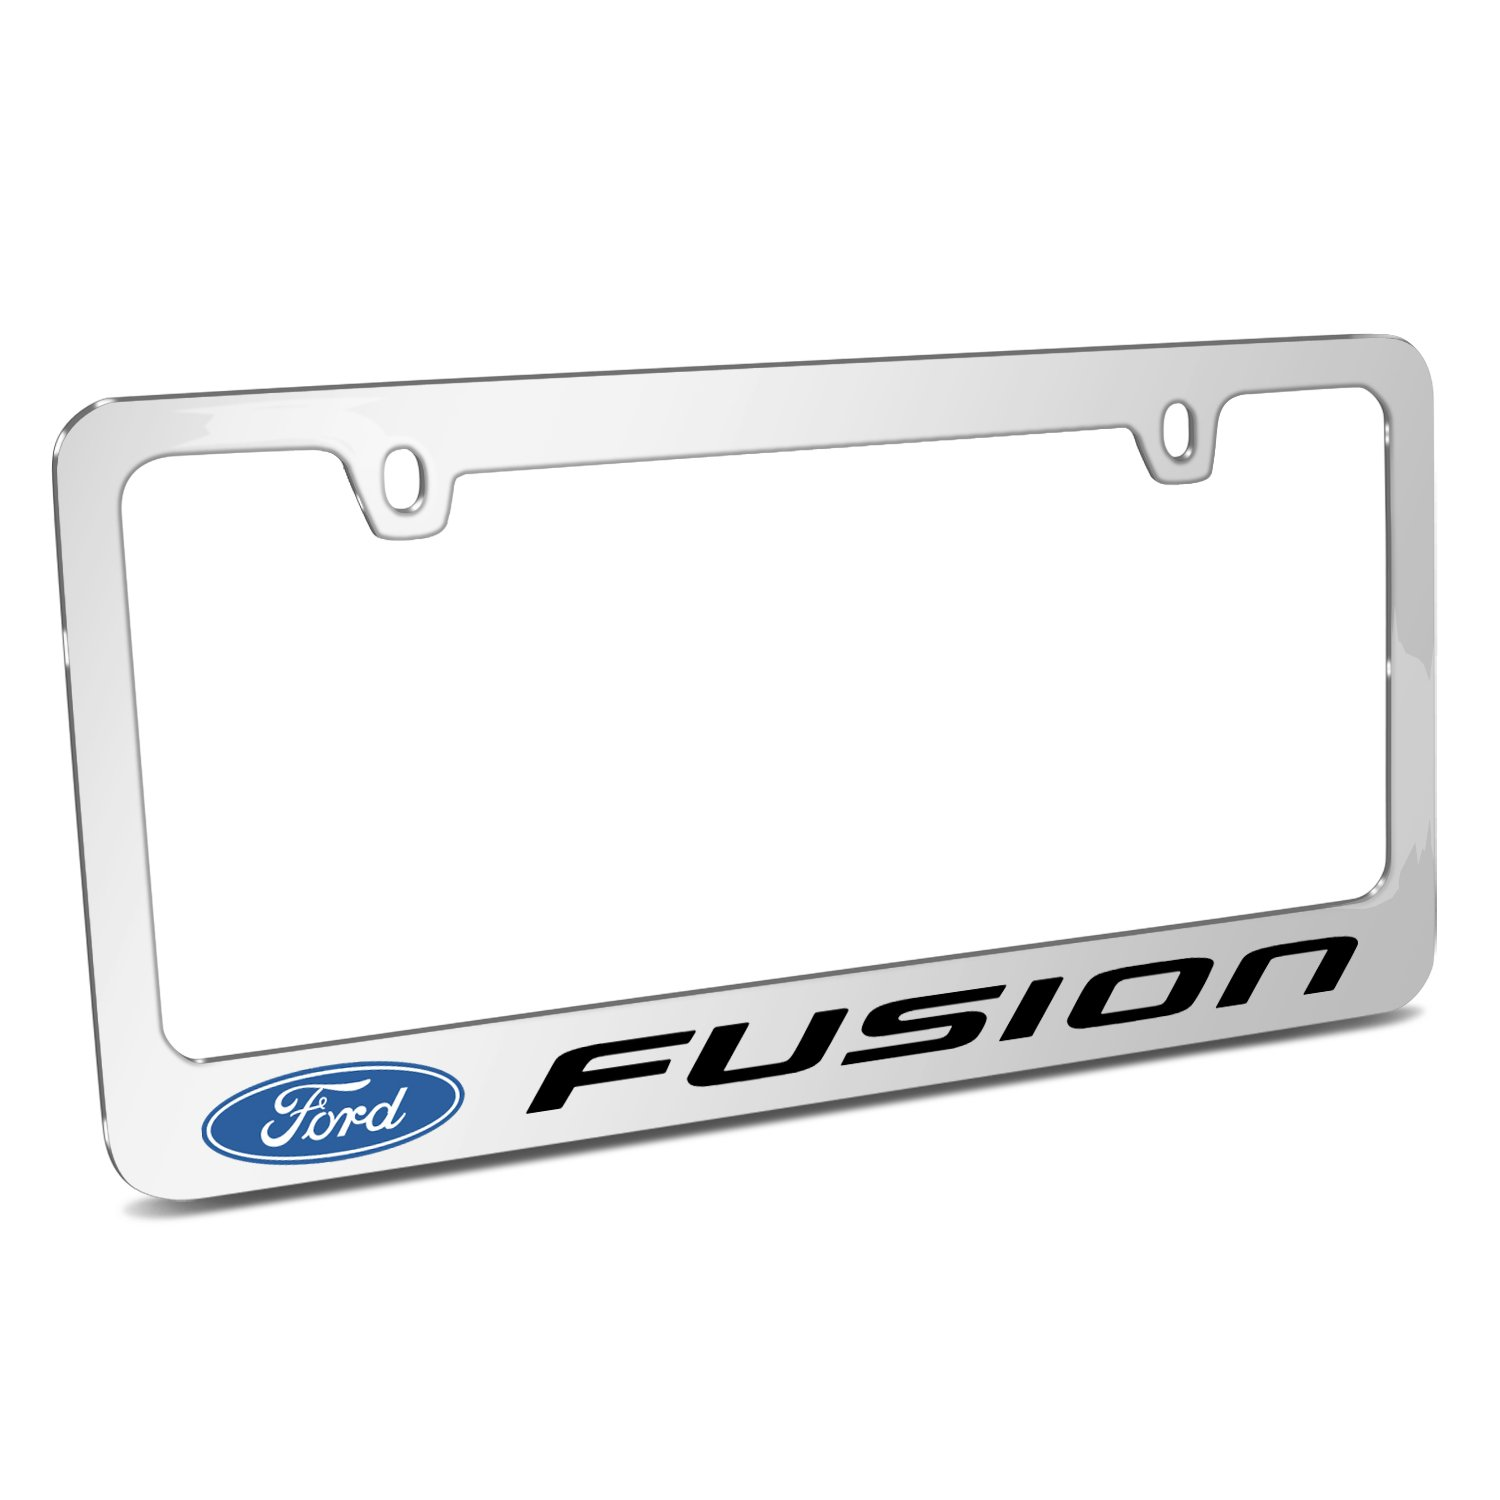 Ford Fusion Mirror Chrome Metal License Plate Frame by iPick Image, Official Licensed Product, Made in the USA